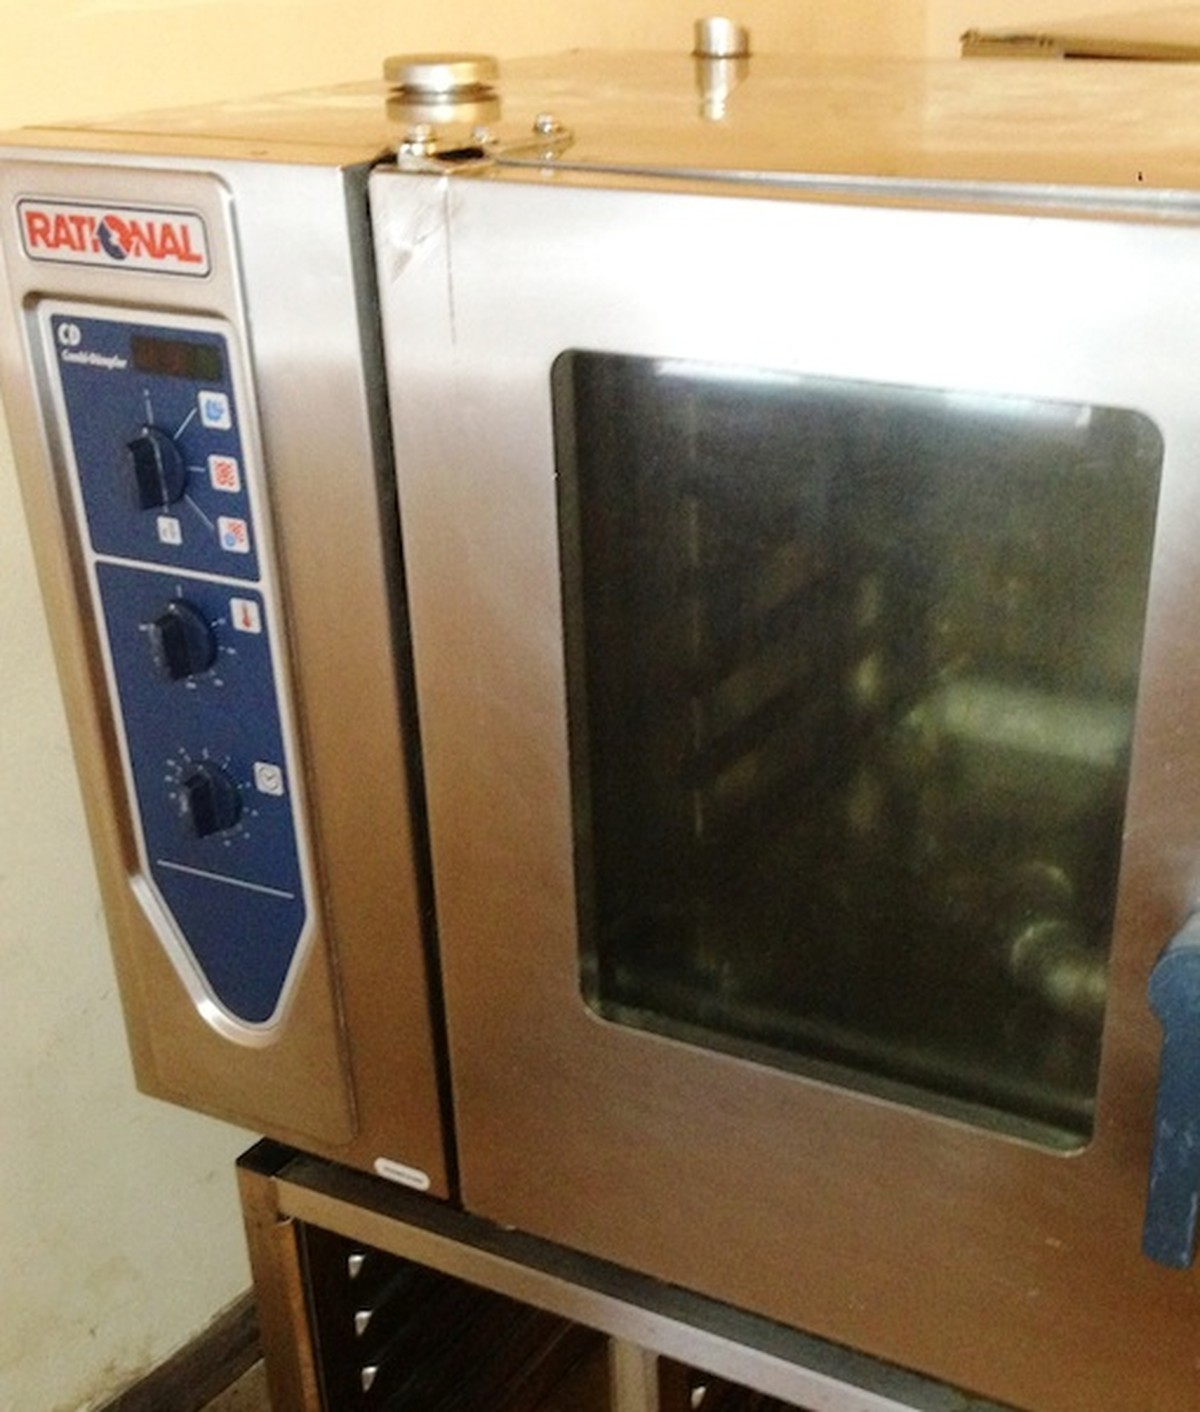 rational cd 6 grid combi oven with stand 761 rational combi oven service manual 100 images rational cm 201 rational cm101 wiring diagram at reclaimingppi.co